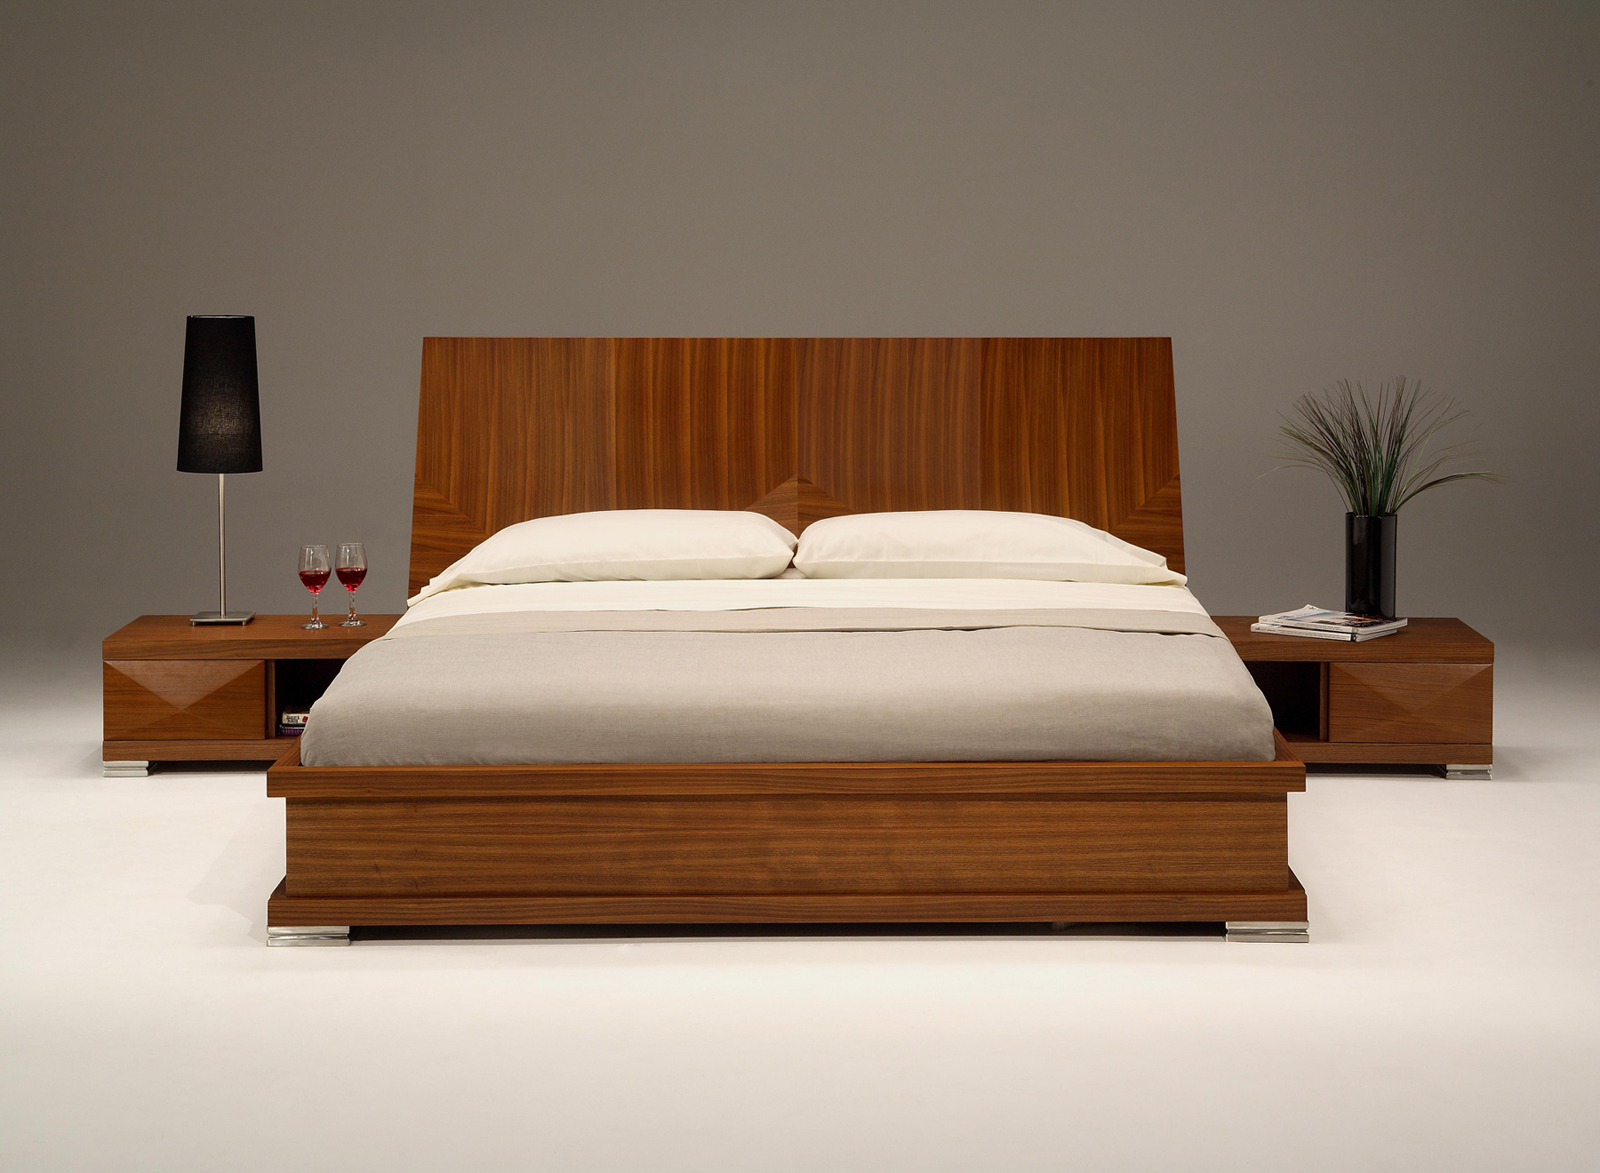 6 inspirational modern bedroom design ideas Wooden bed furniture